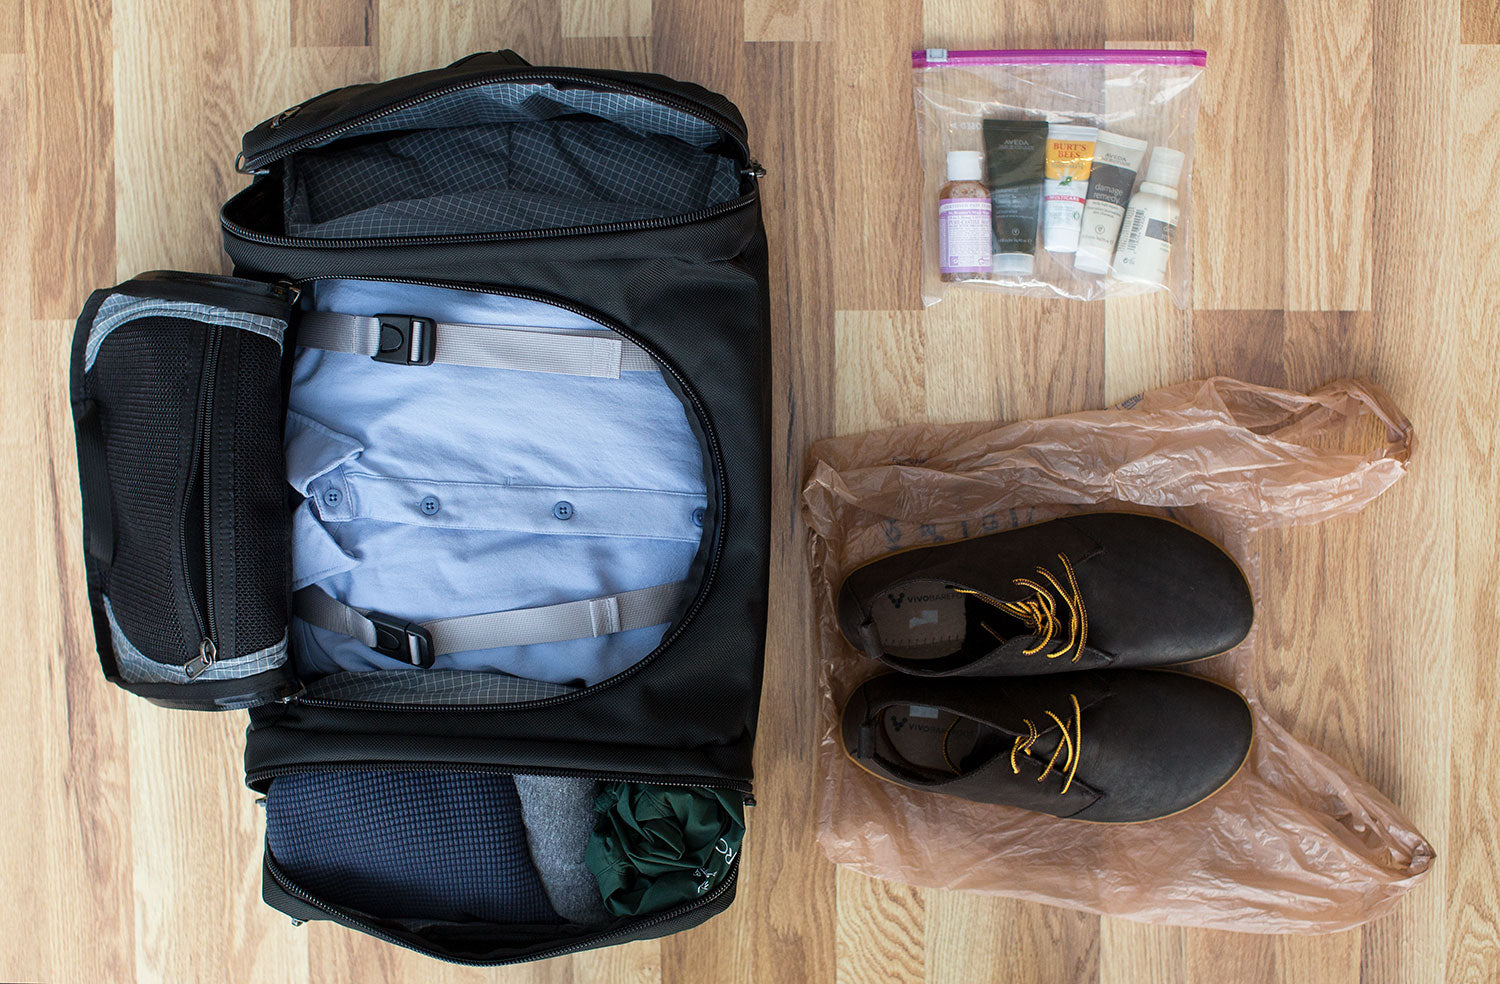 An Aeronaut 30 using built-in organization; zip-lock bag for toiletries and a plastic grocery bag for packing shoes